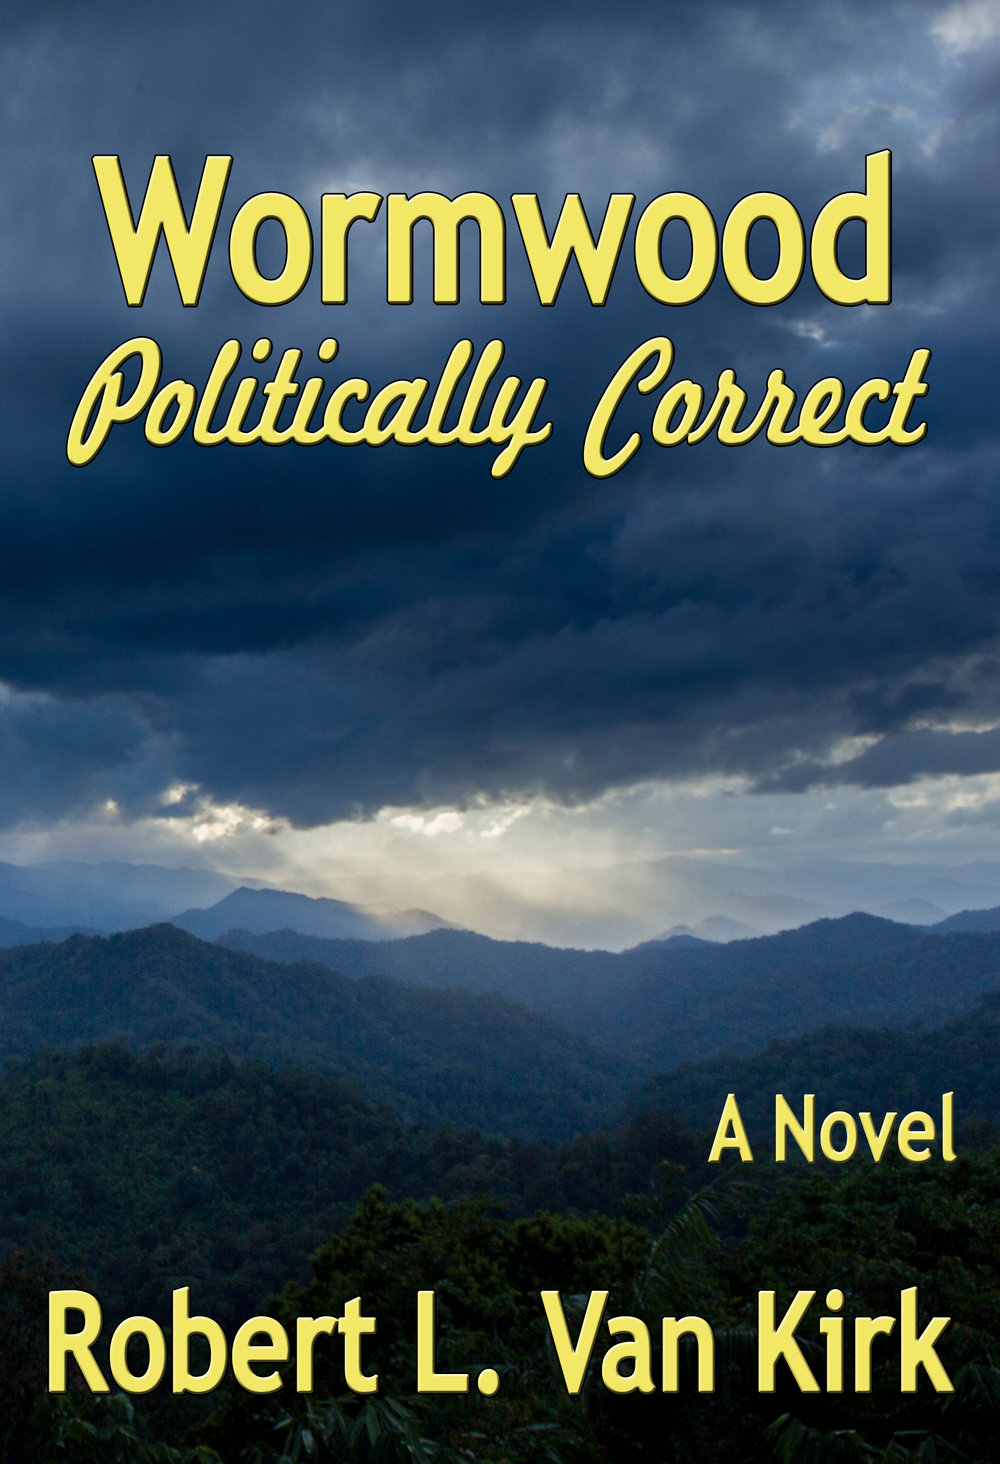 Wormwood: Politically Correct A Novel By Robert L. Van Kirk